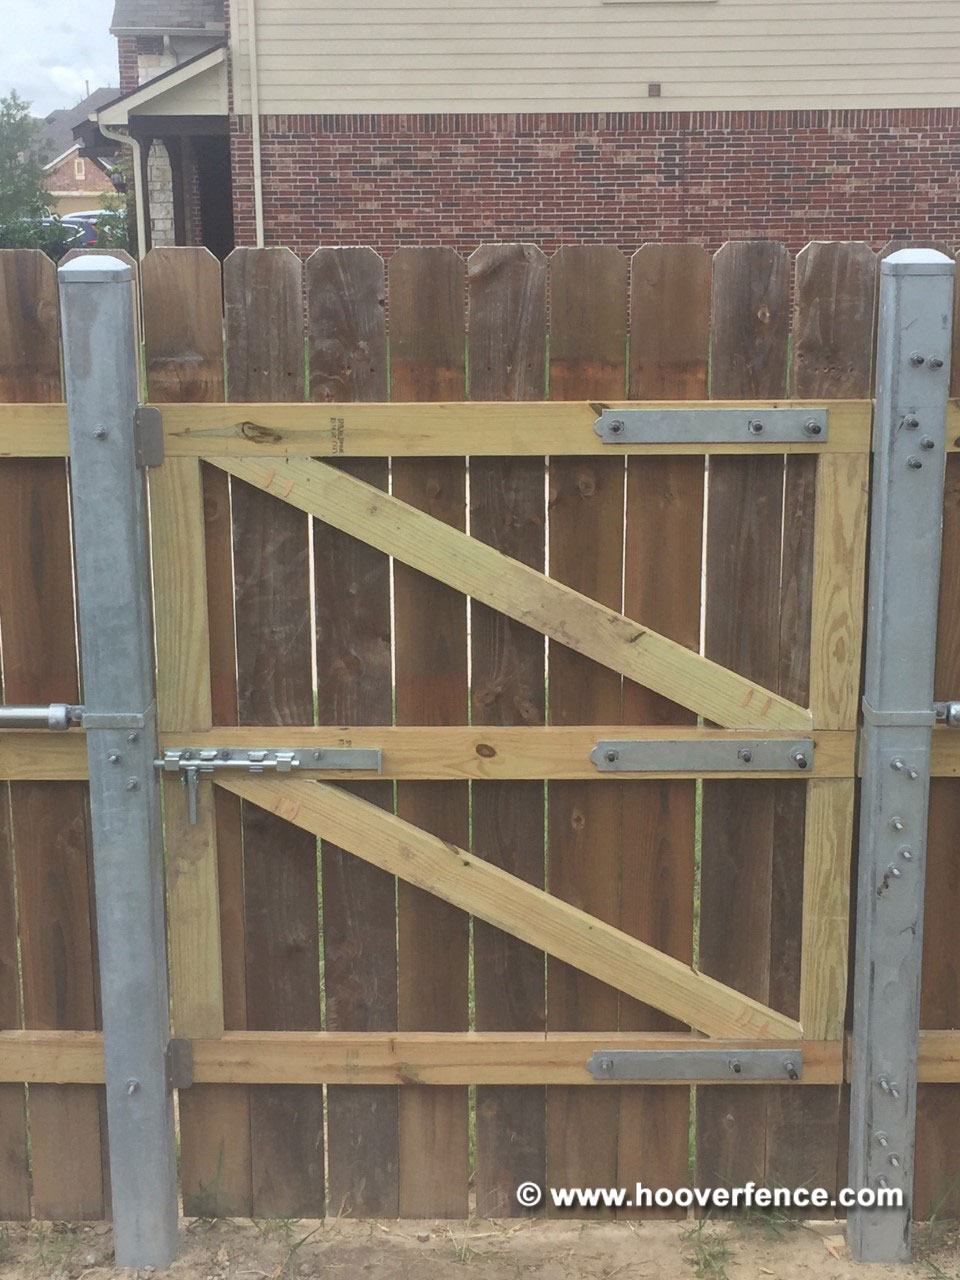 Customer Photo - Solid Dog Ear Wood Gates Hung on 4x4 Steel Posts Using Snug Cottage Hardware